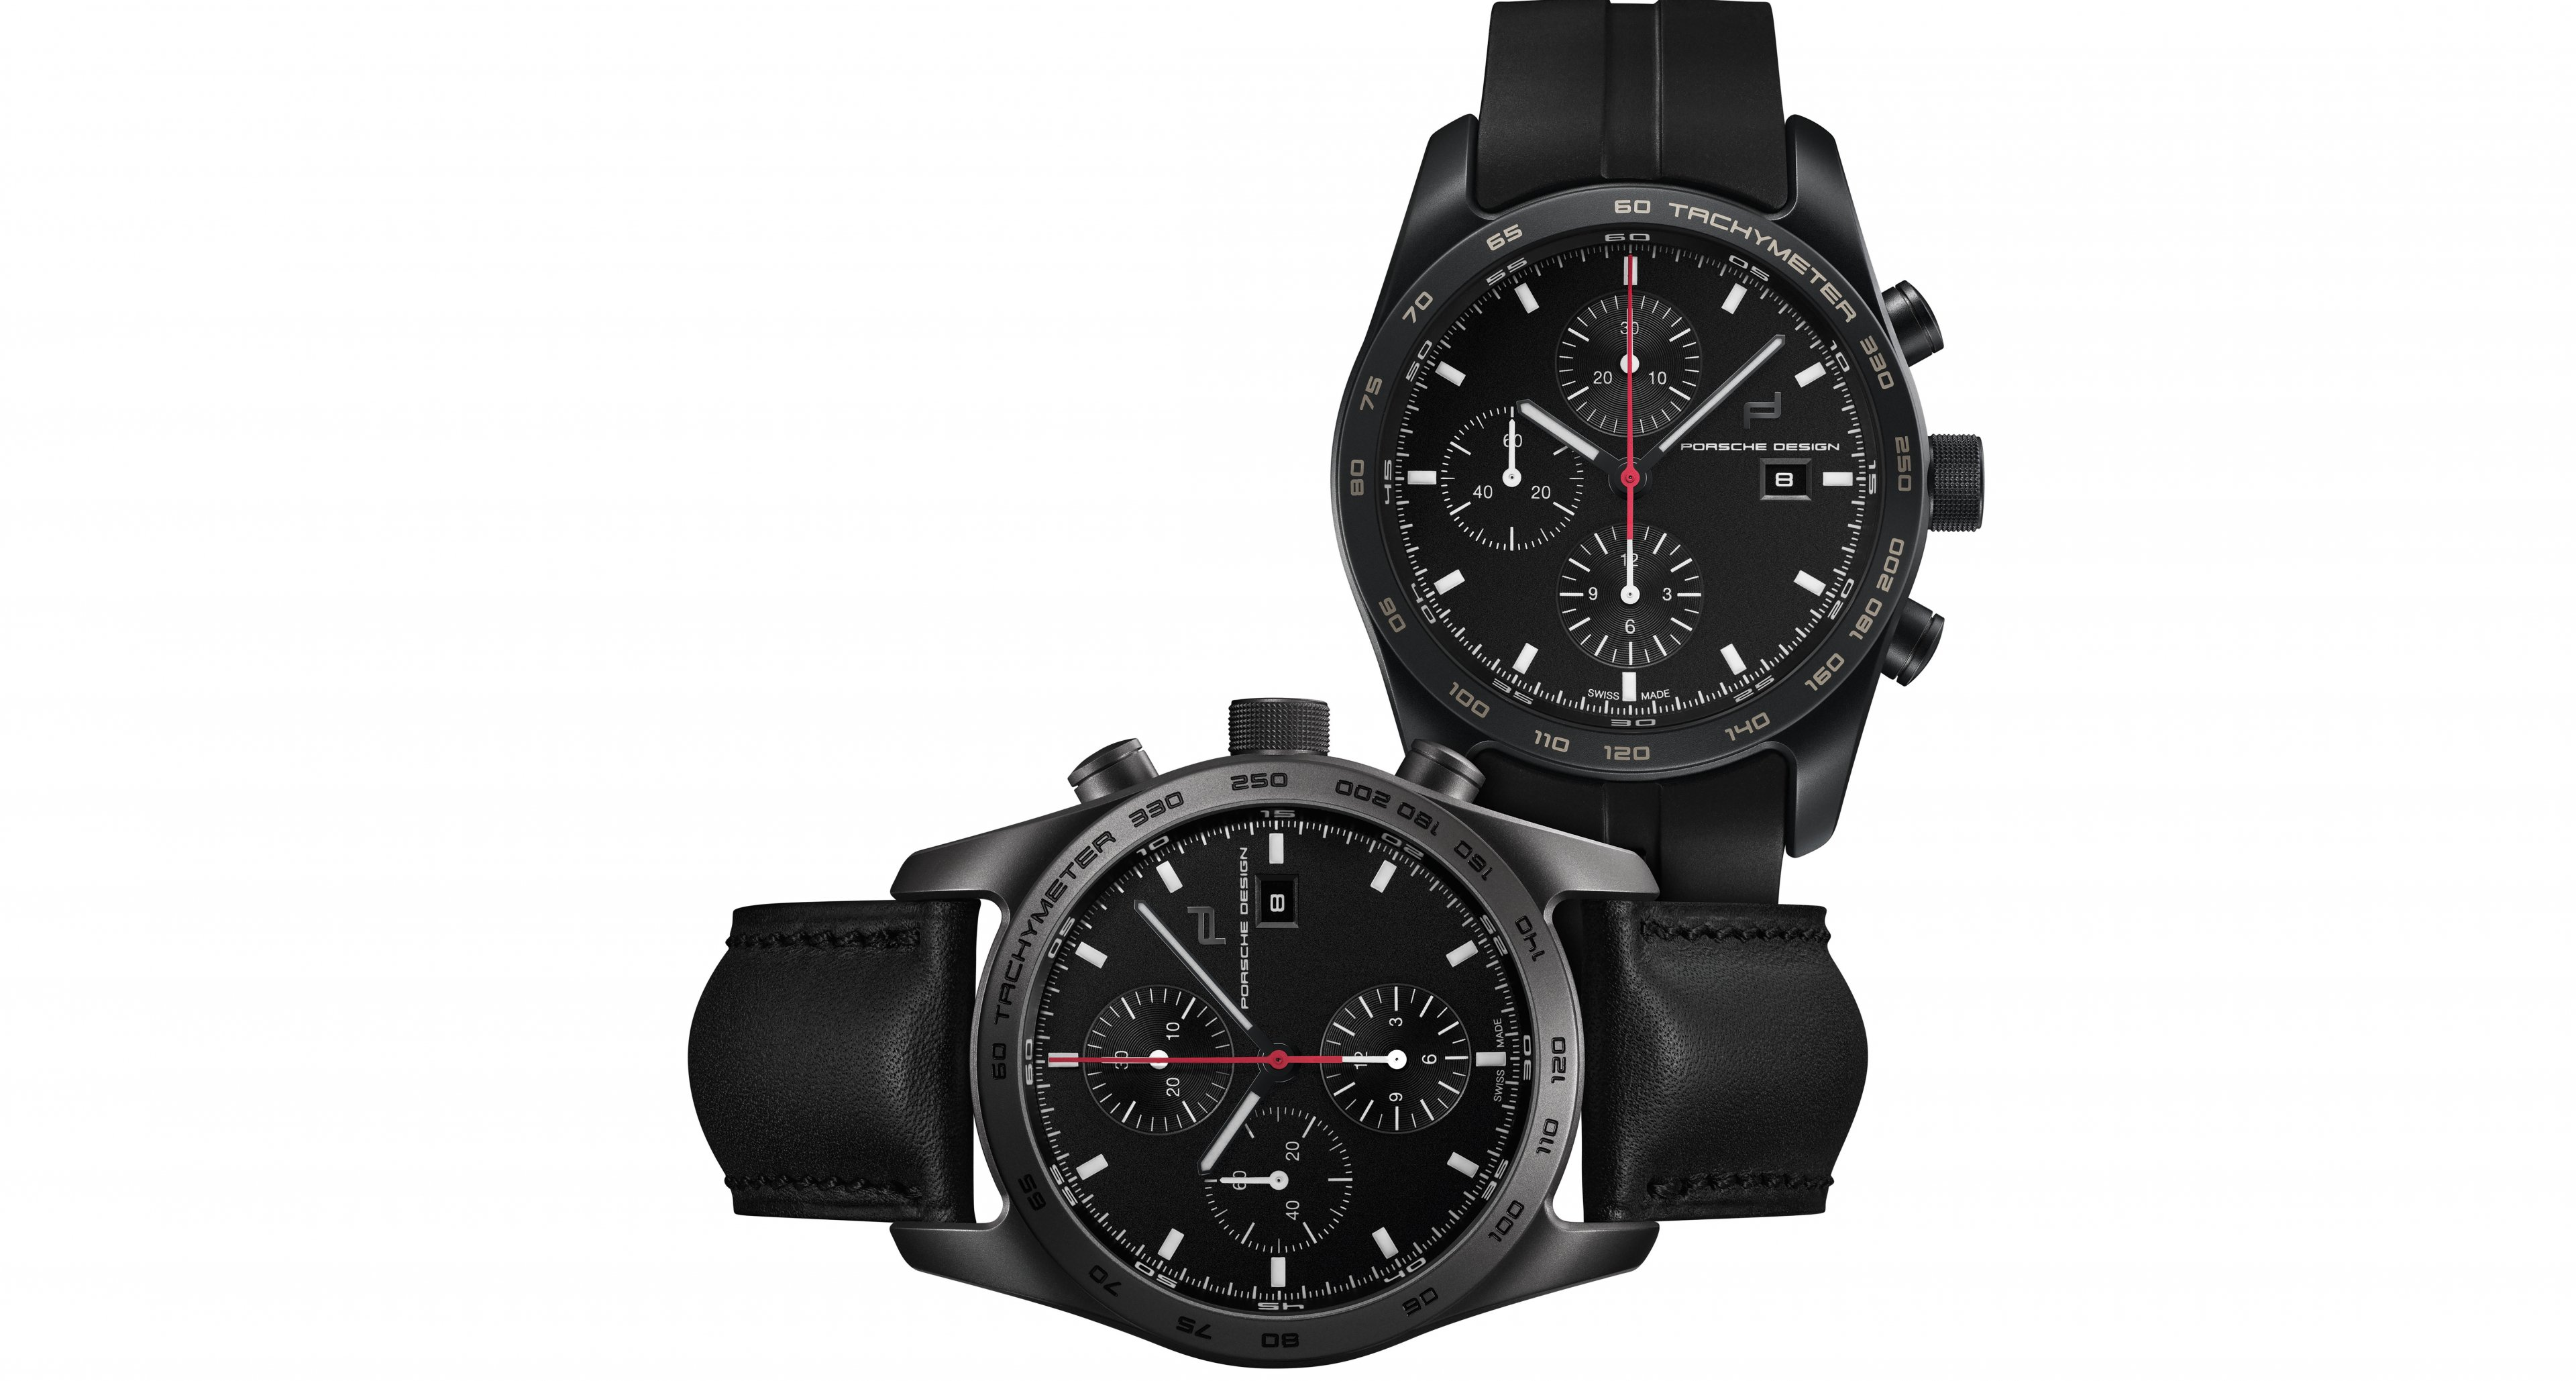 Porsche Design Timepiece No.1 in black and titan